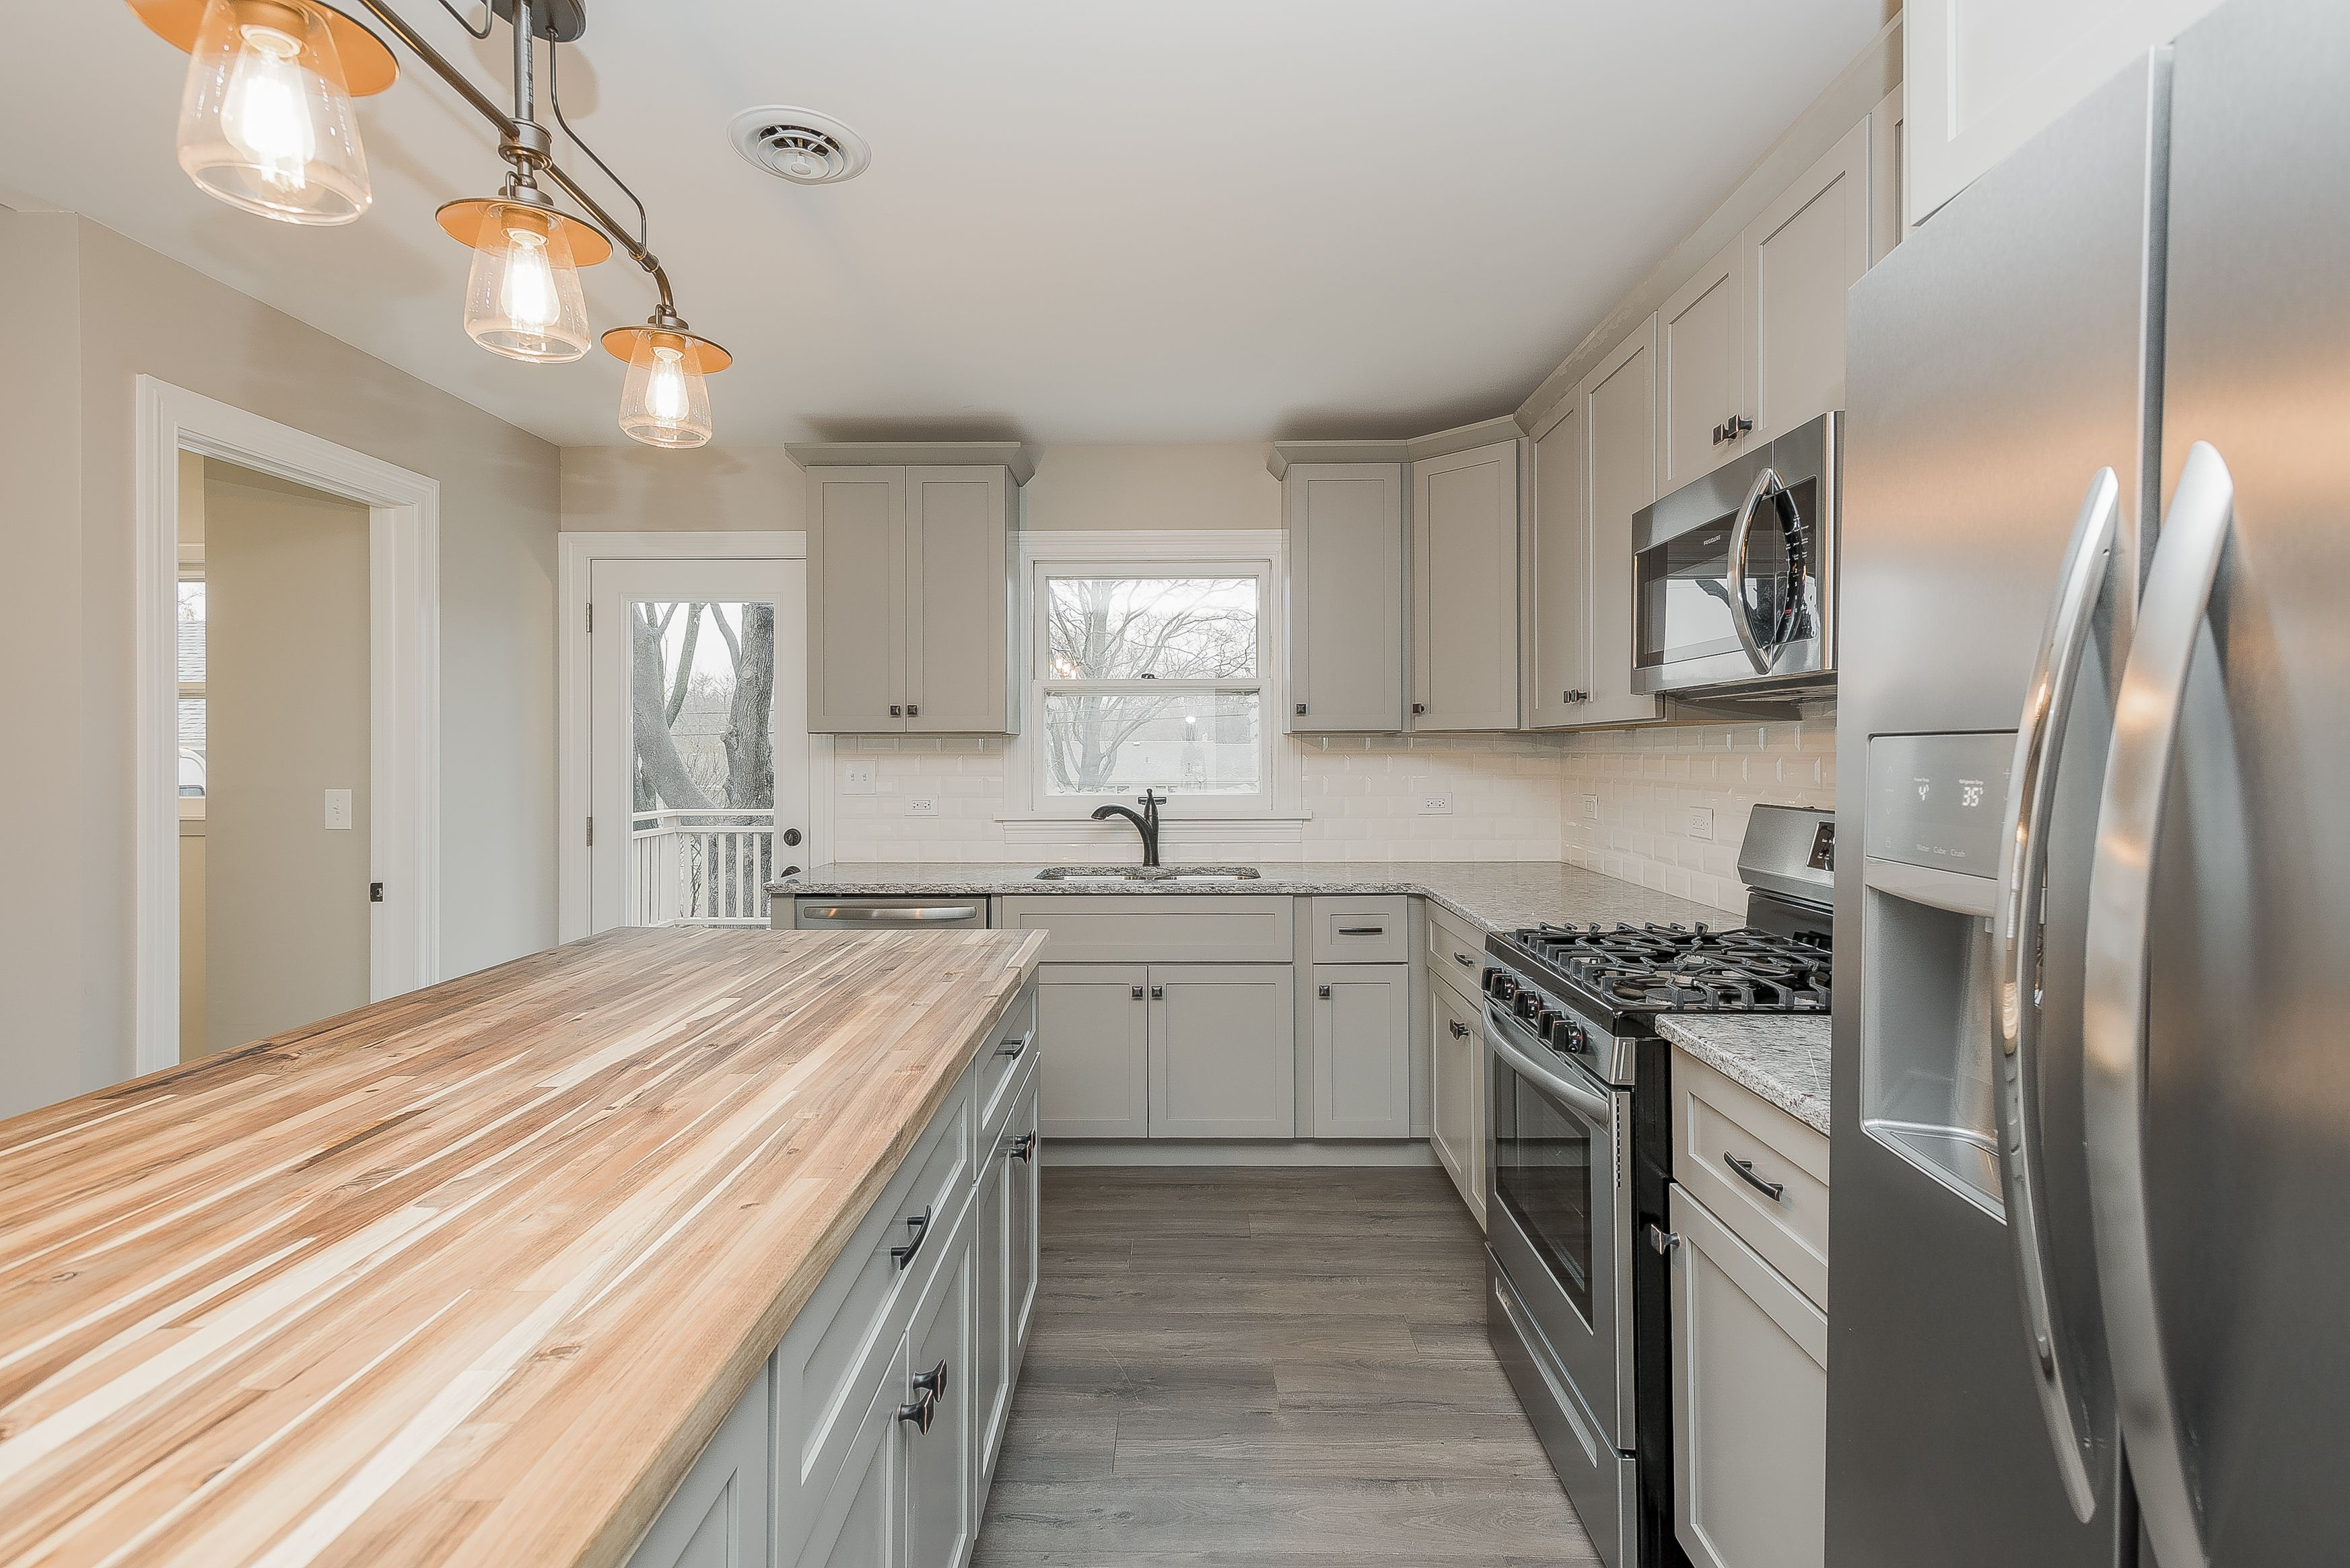 Gray Cabinets With Butcher Block And Granite Counter Tops Mixed